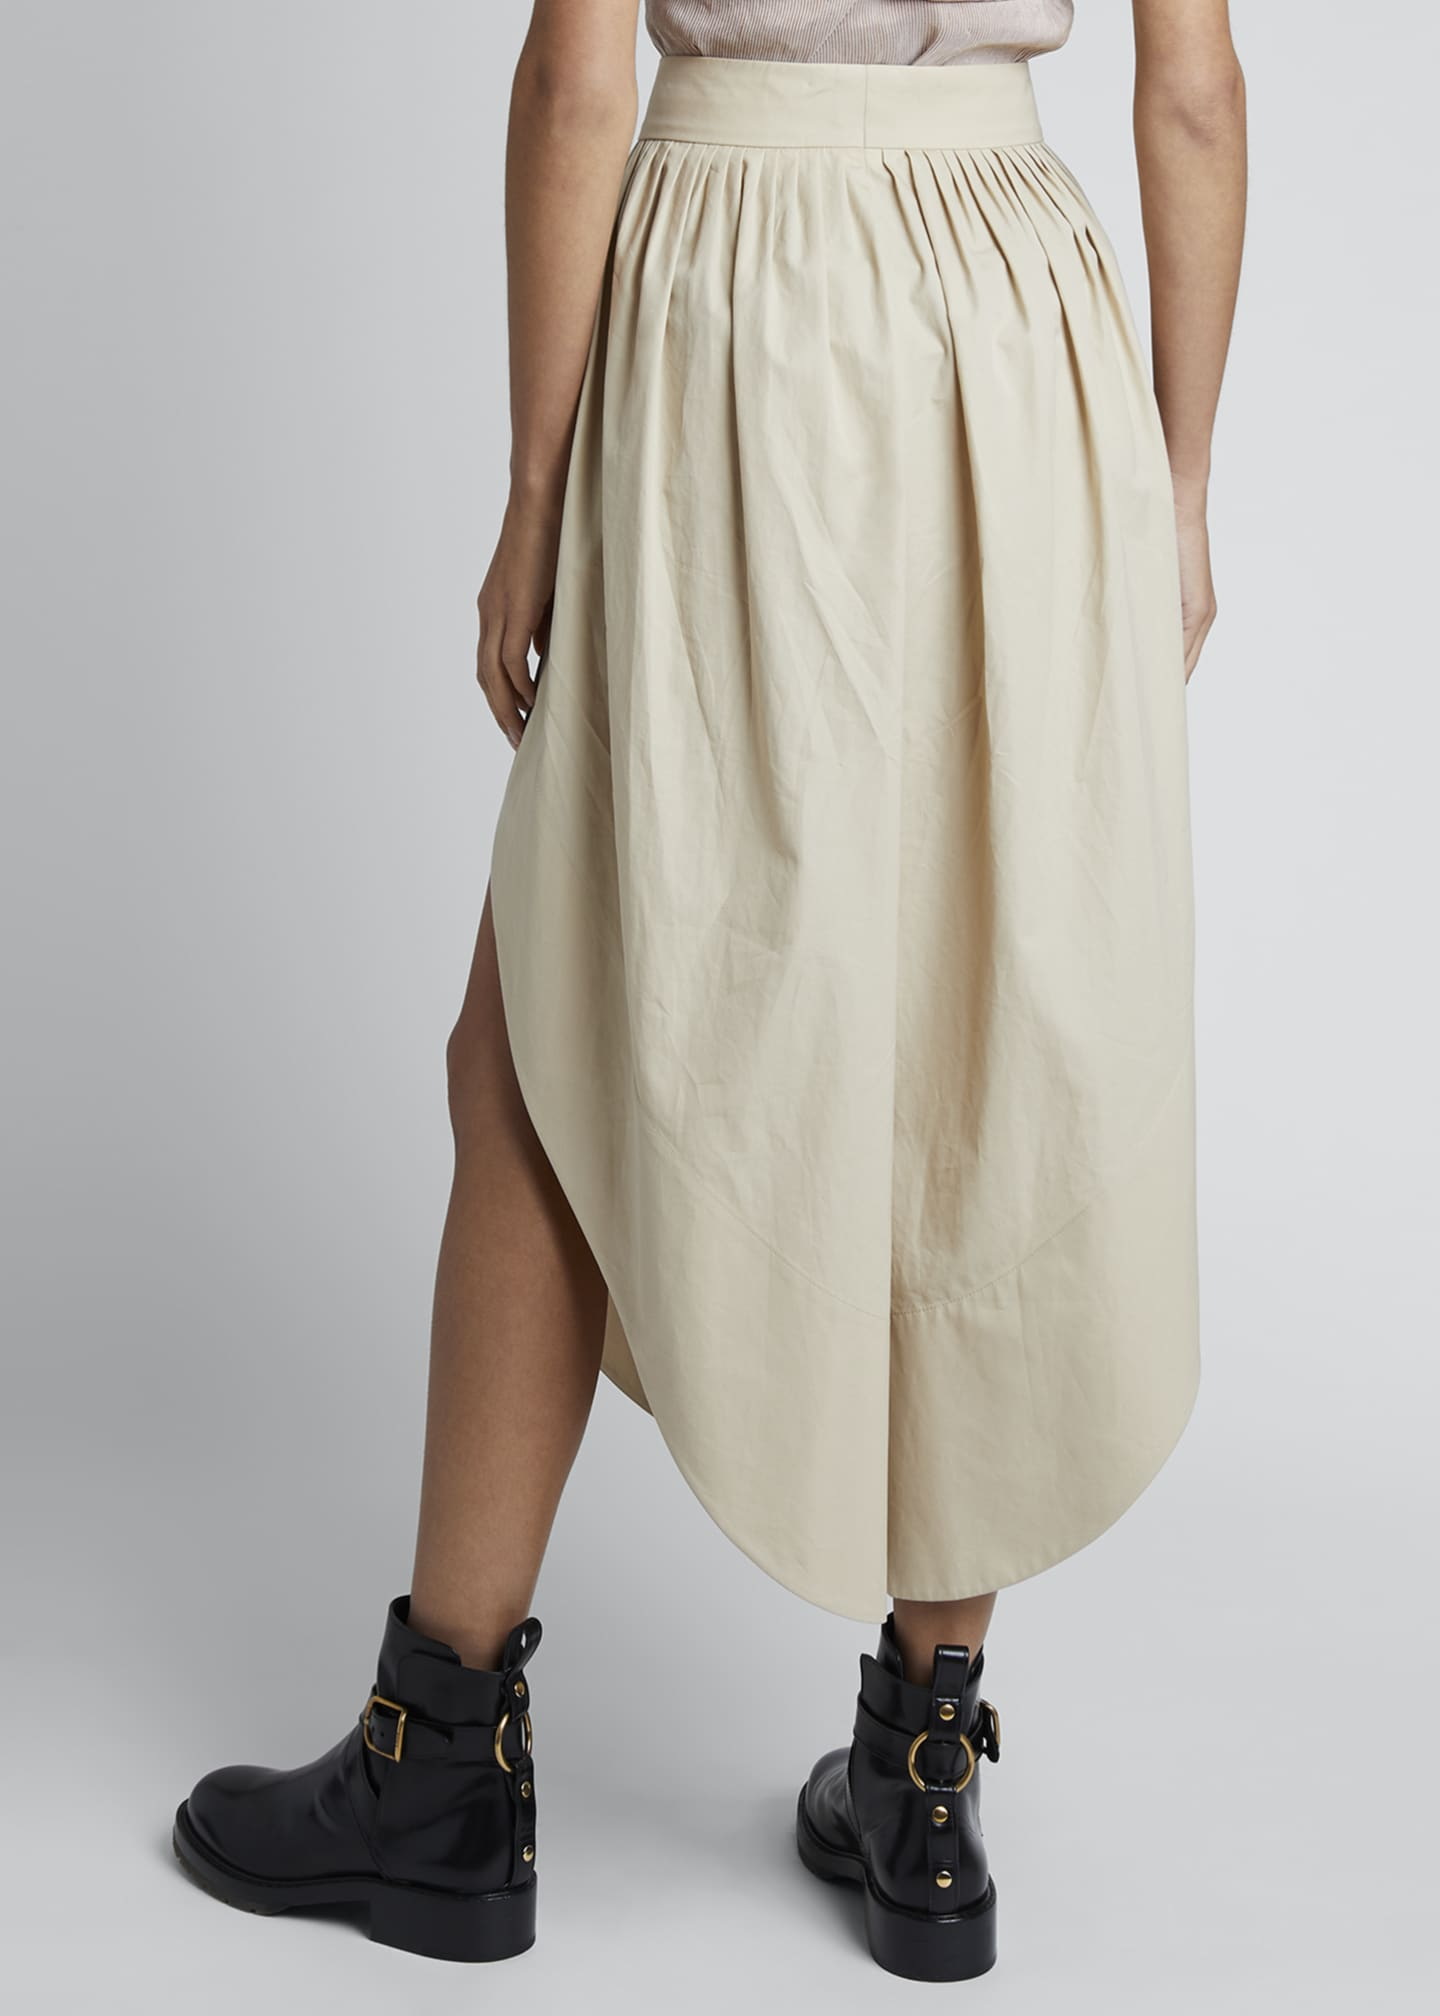 Image 2 of 3: Cotton Poplin High-Waist Culotte Pants